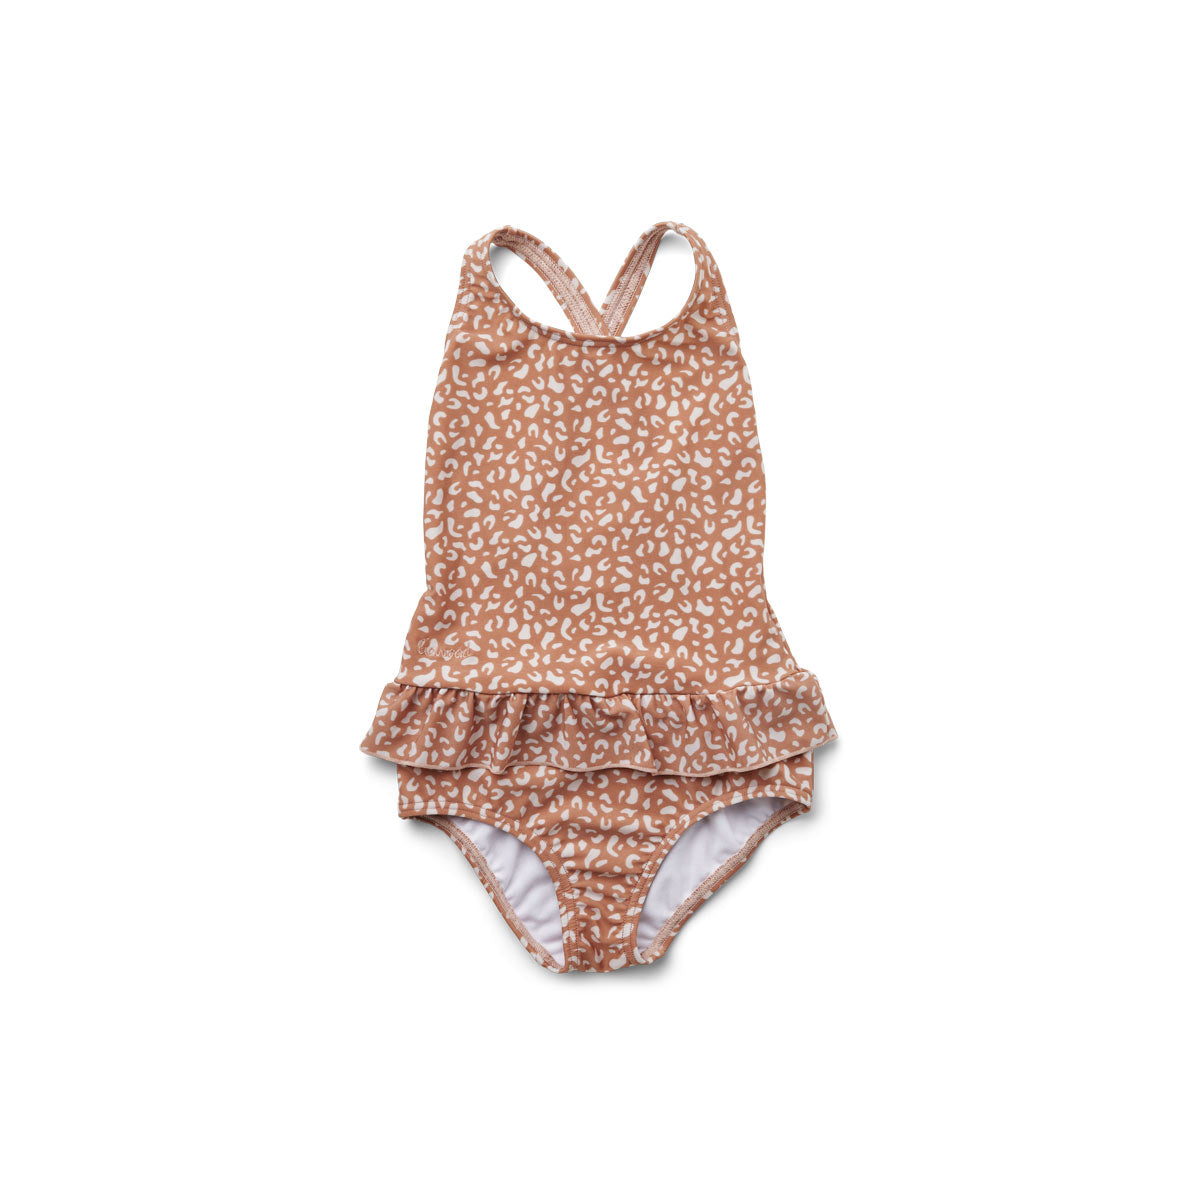 Liewood Amara Swimsuit - Mini leo tuscany rose - Swimwear